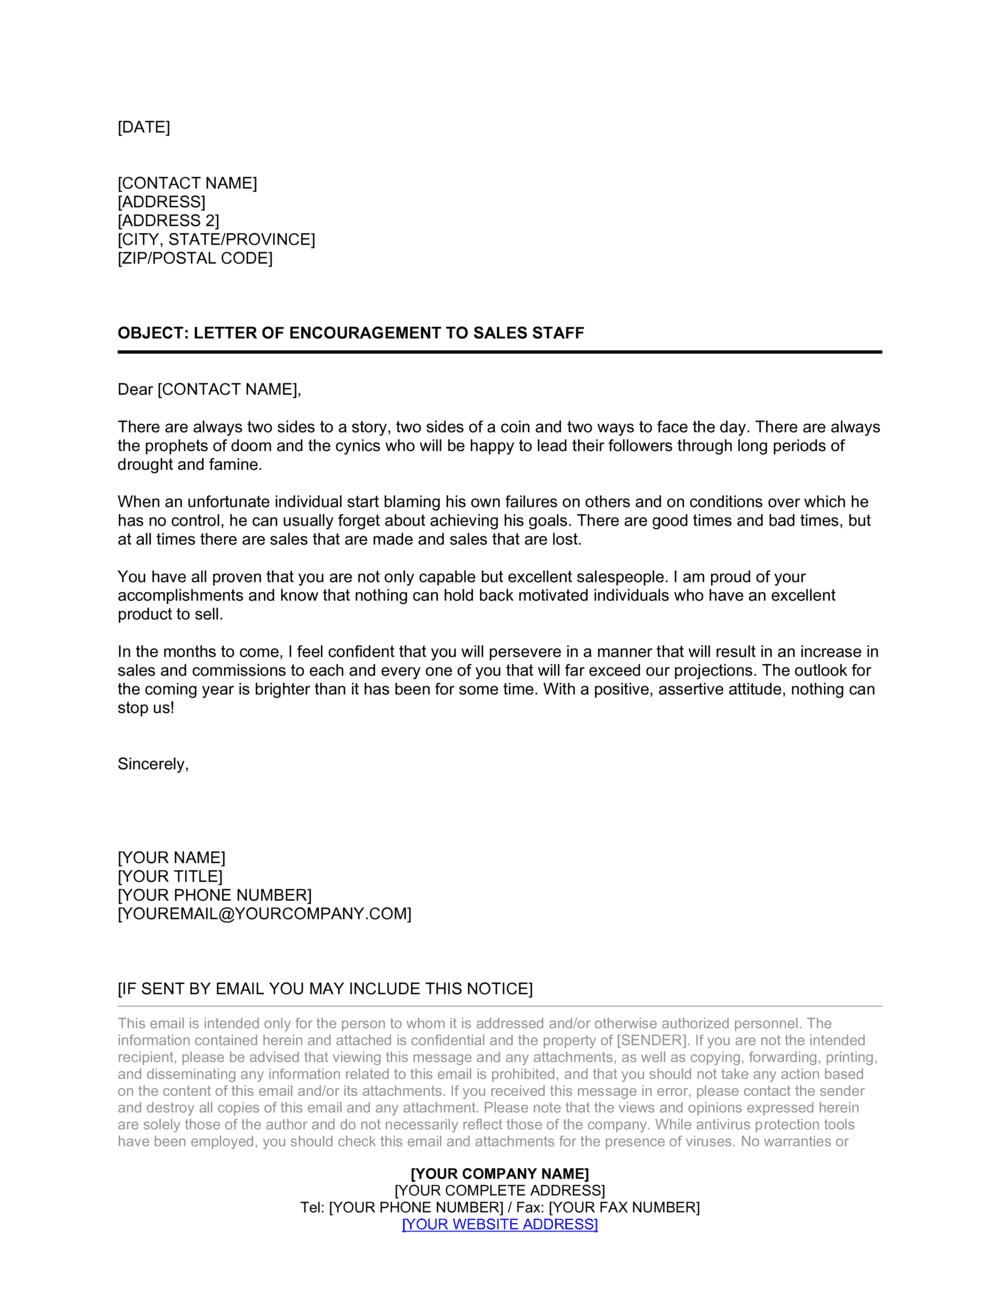 Business-in-a-Box's Letter of Encouragement to Sales Staff Template